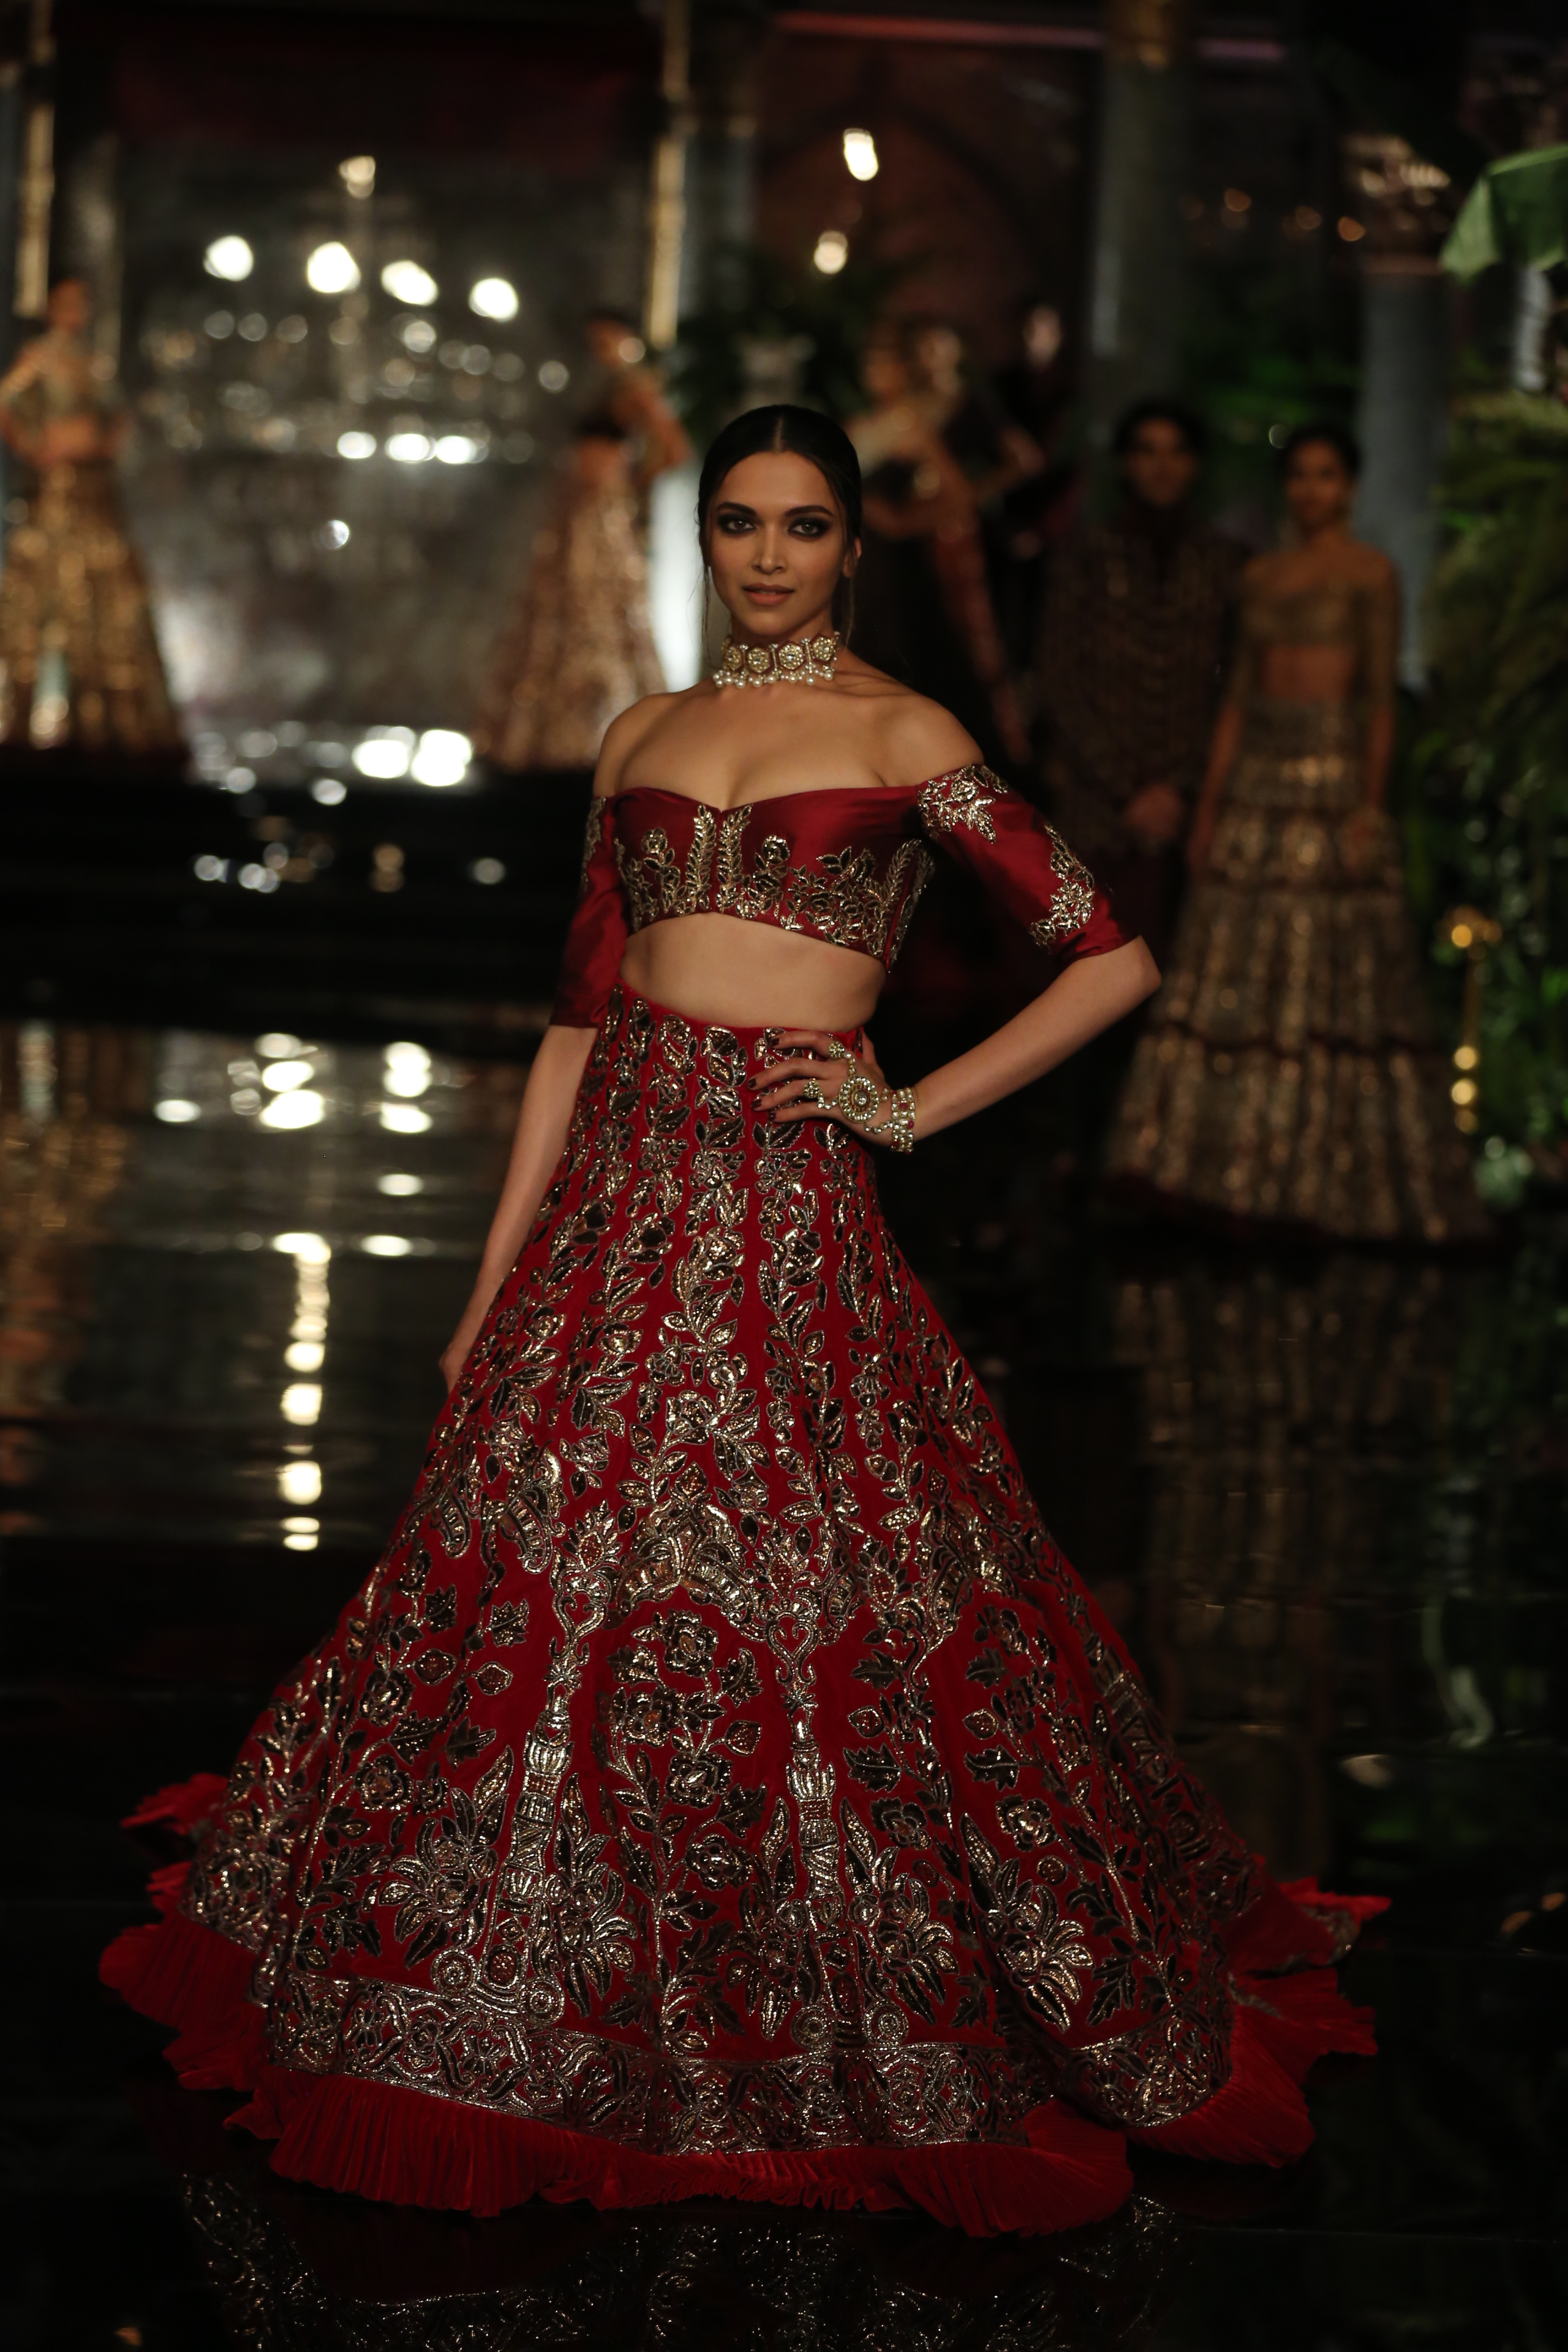 FDCI India Couture Week 2016 - Manish Malhotra 'The Persian Story' worn by Deepika Padukone